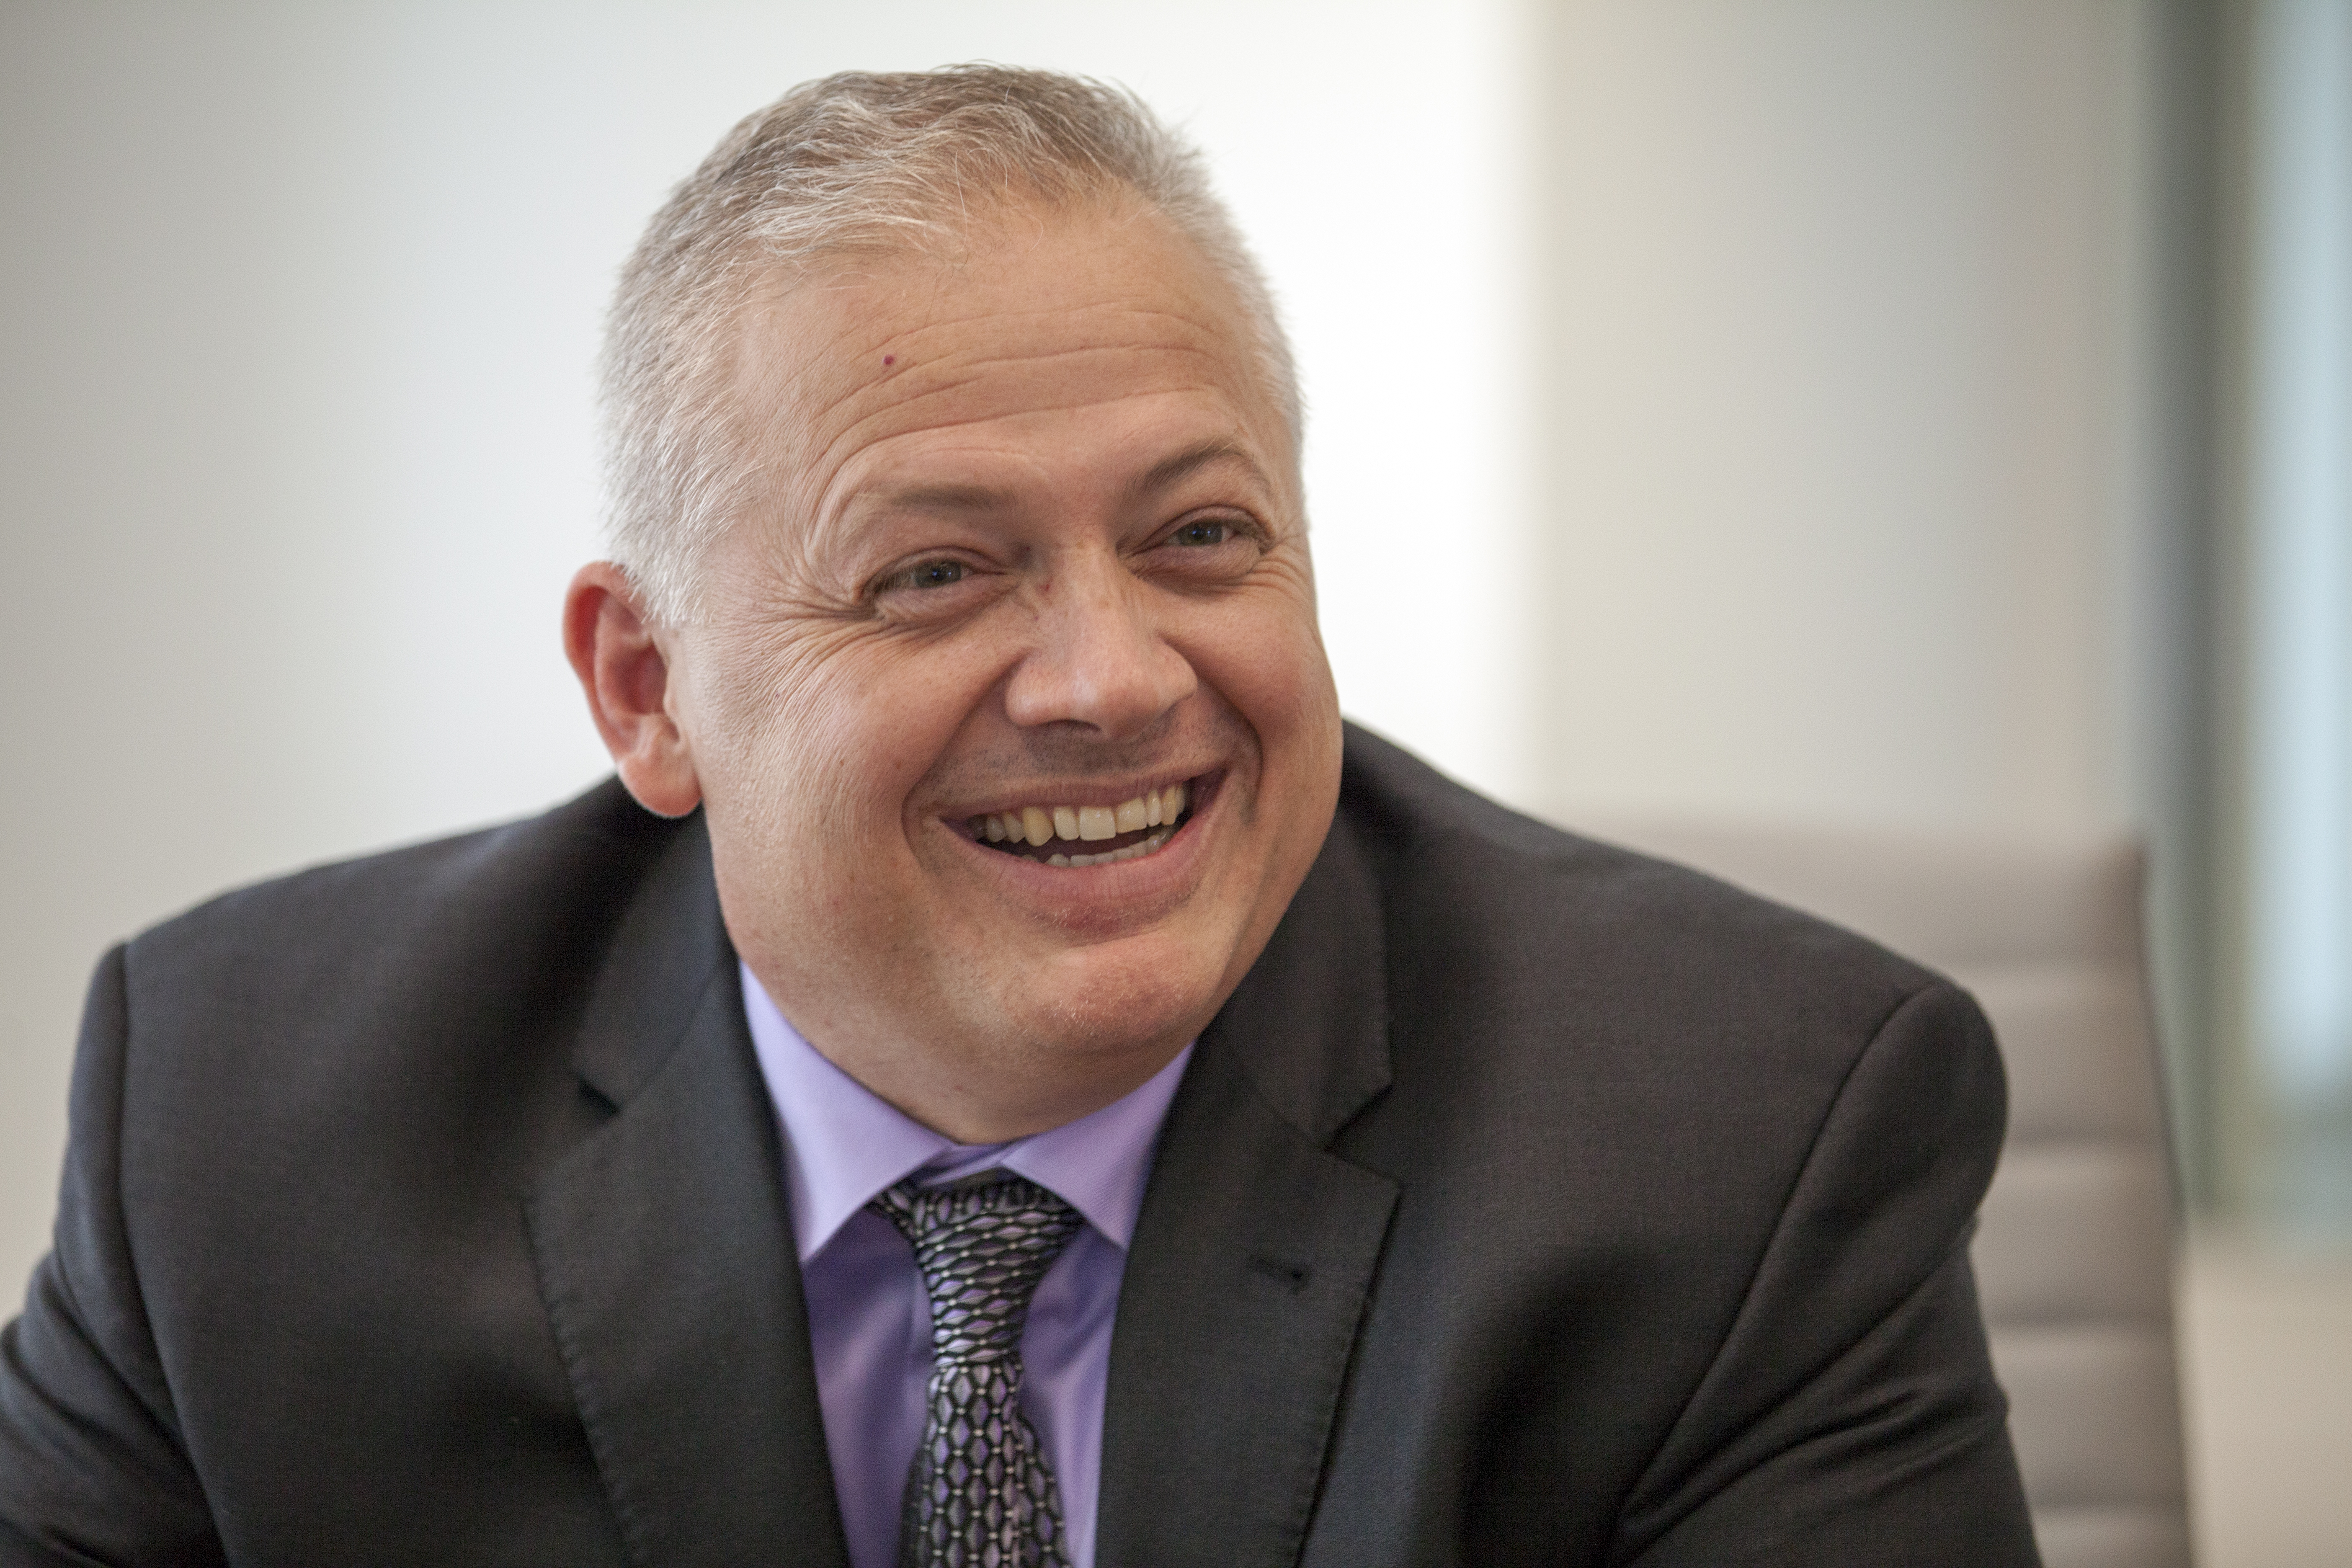 Denver Riggleman, Republican candidate for Virginia's 5th Congressional district, is interviewed by CQ Roll Call at their D.C. office, June 20, 2018.